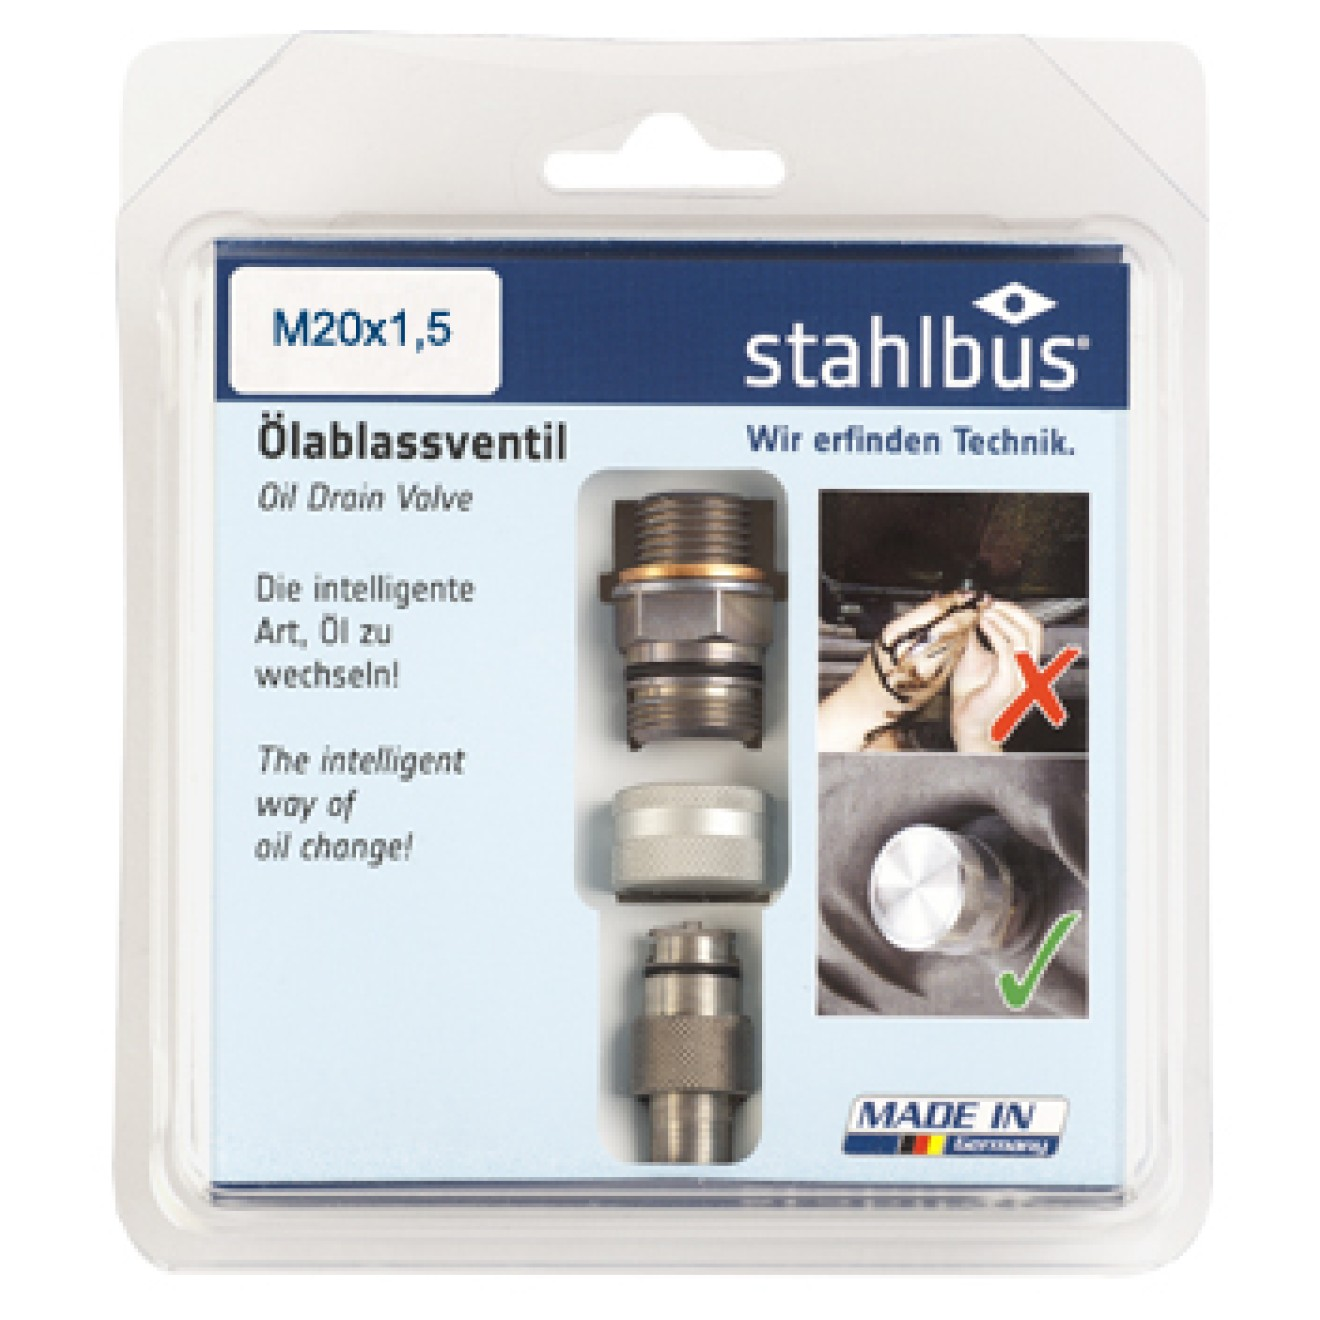 stahlbus Oil Drain Valve M20x1.5x12mm, steel (set)